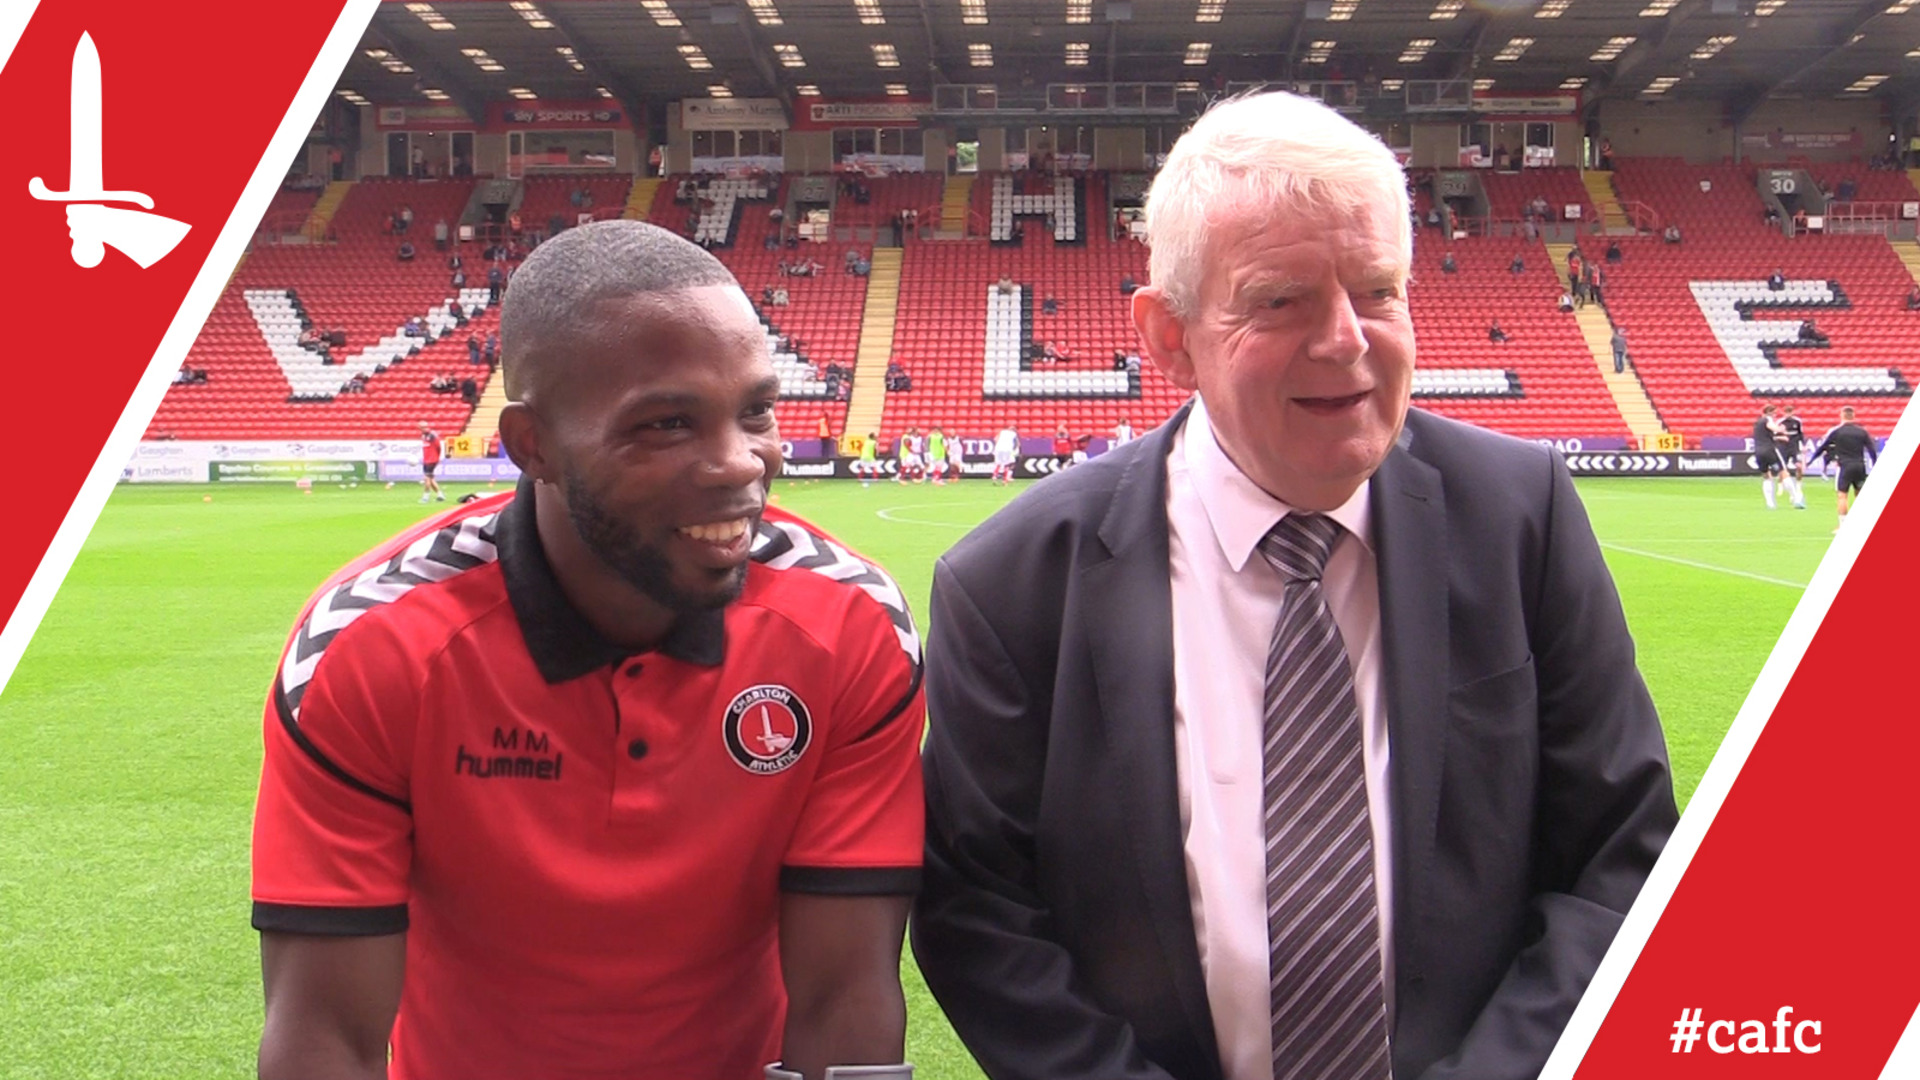 Legendary commentator John Motson on his special relationship with Charlton and Mark Marshall